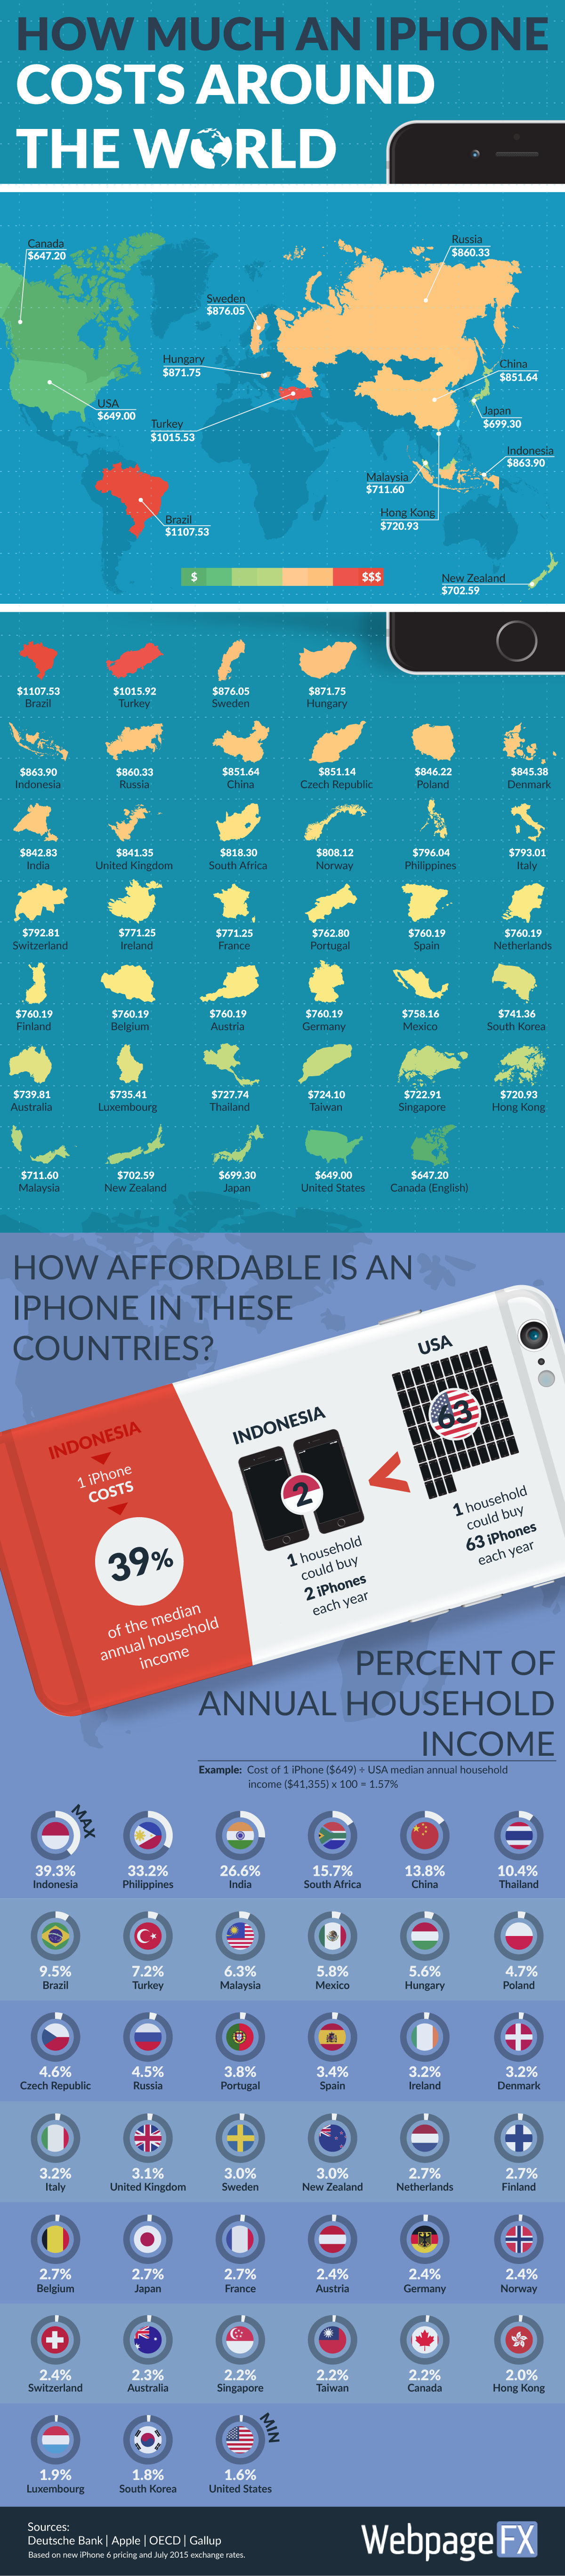 iPhone-Costs-Around-The-World-infographic-WebpageFX